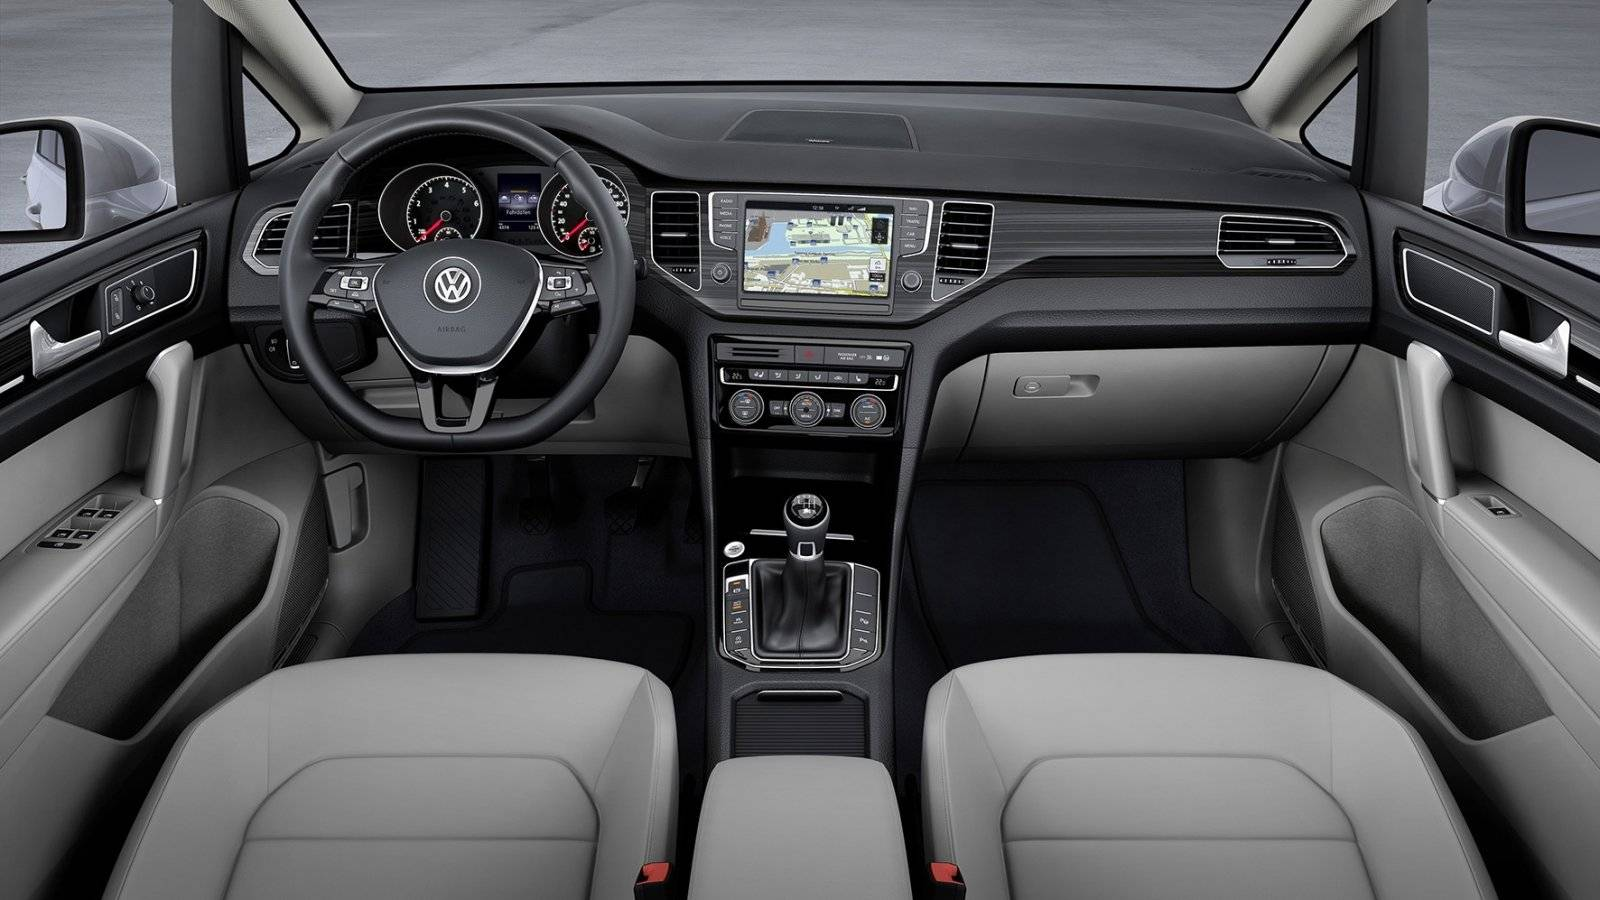 http://images.autowereld.com/high/77827-vw-golf-sportsvan-4.jpg